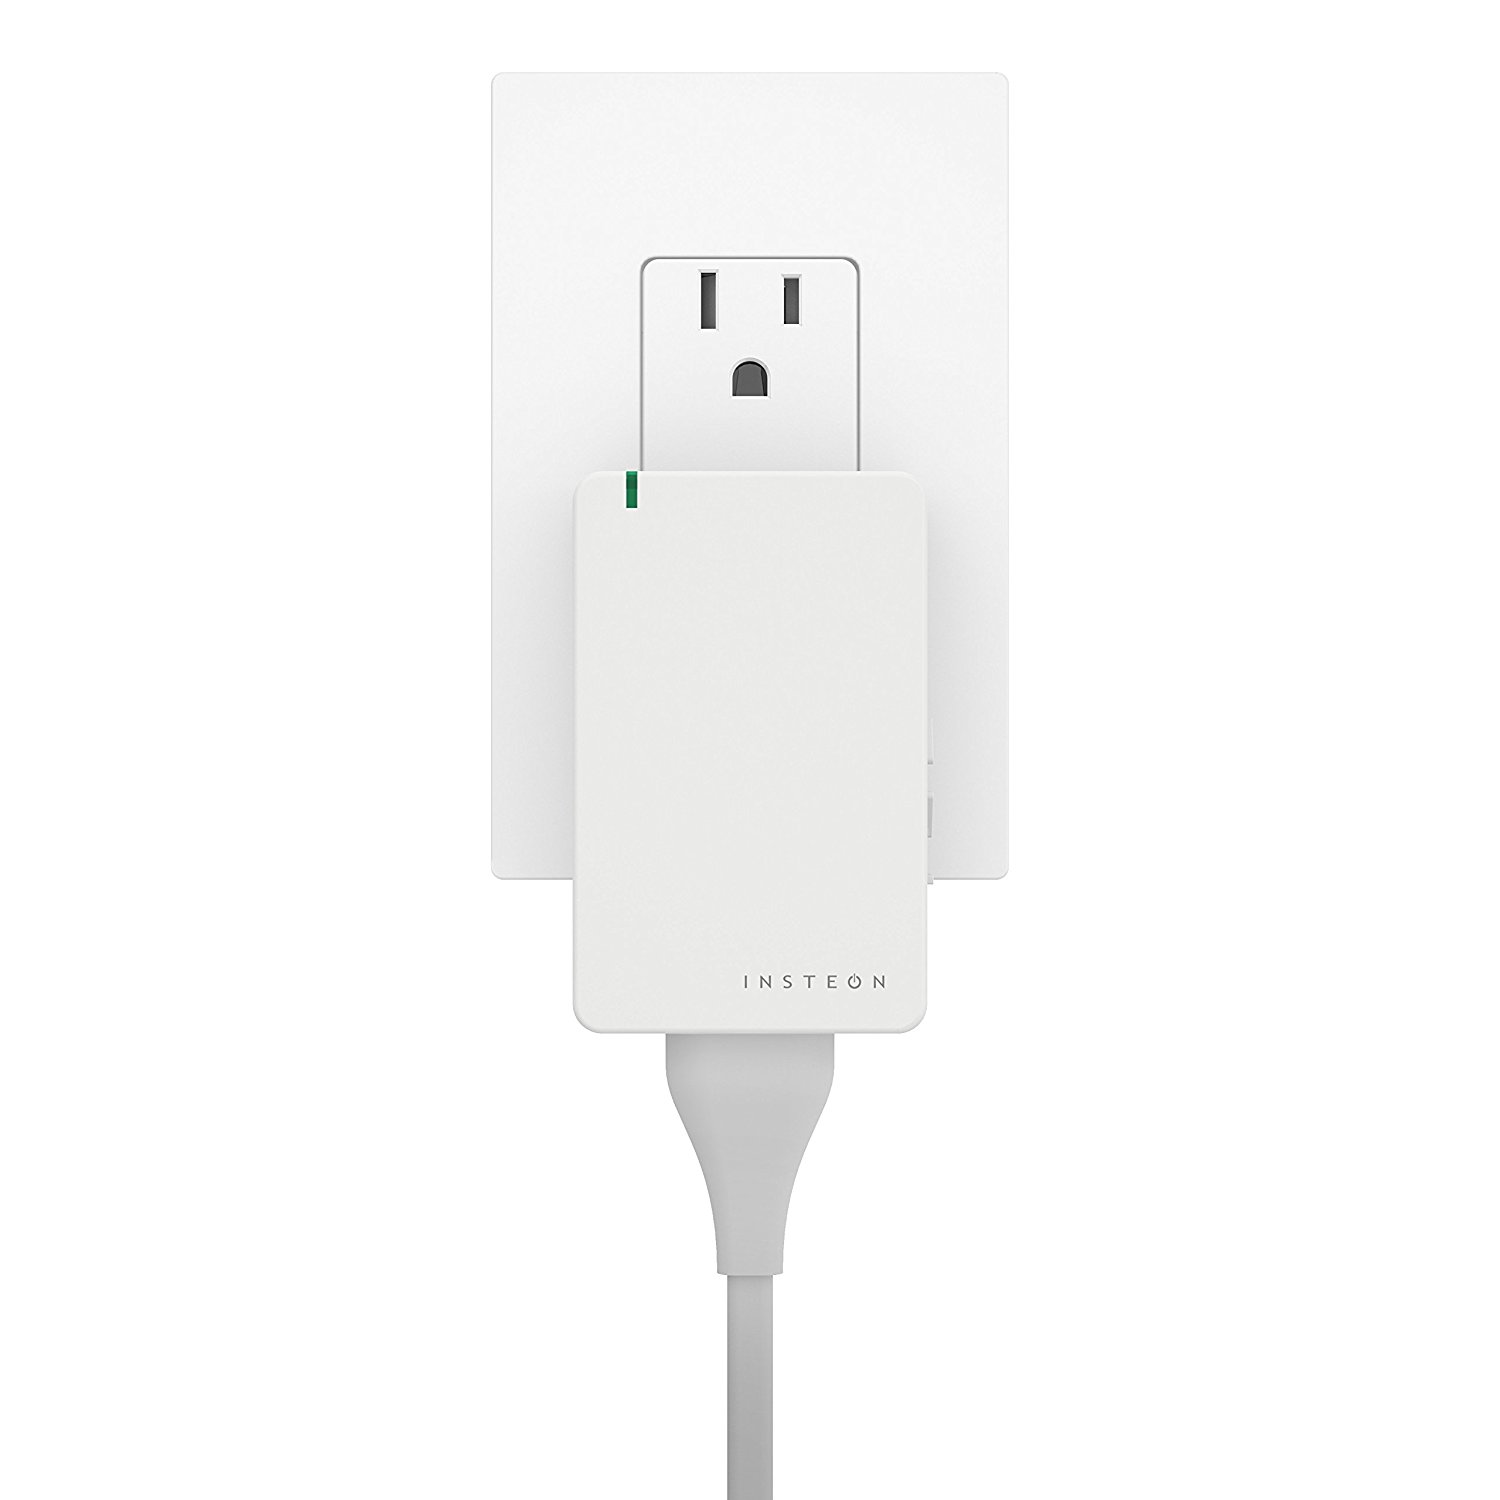 Insteon Smart Outlets